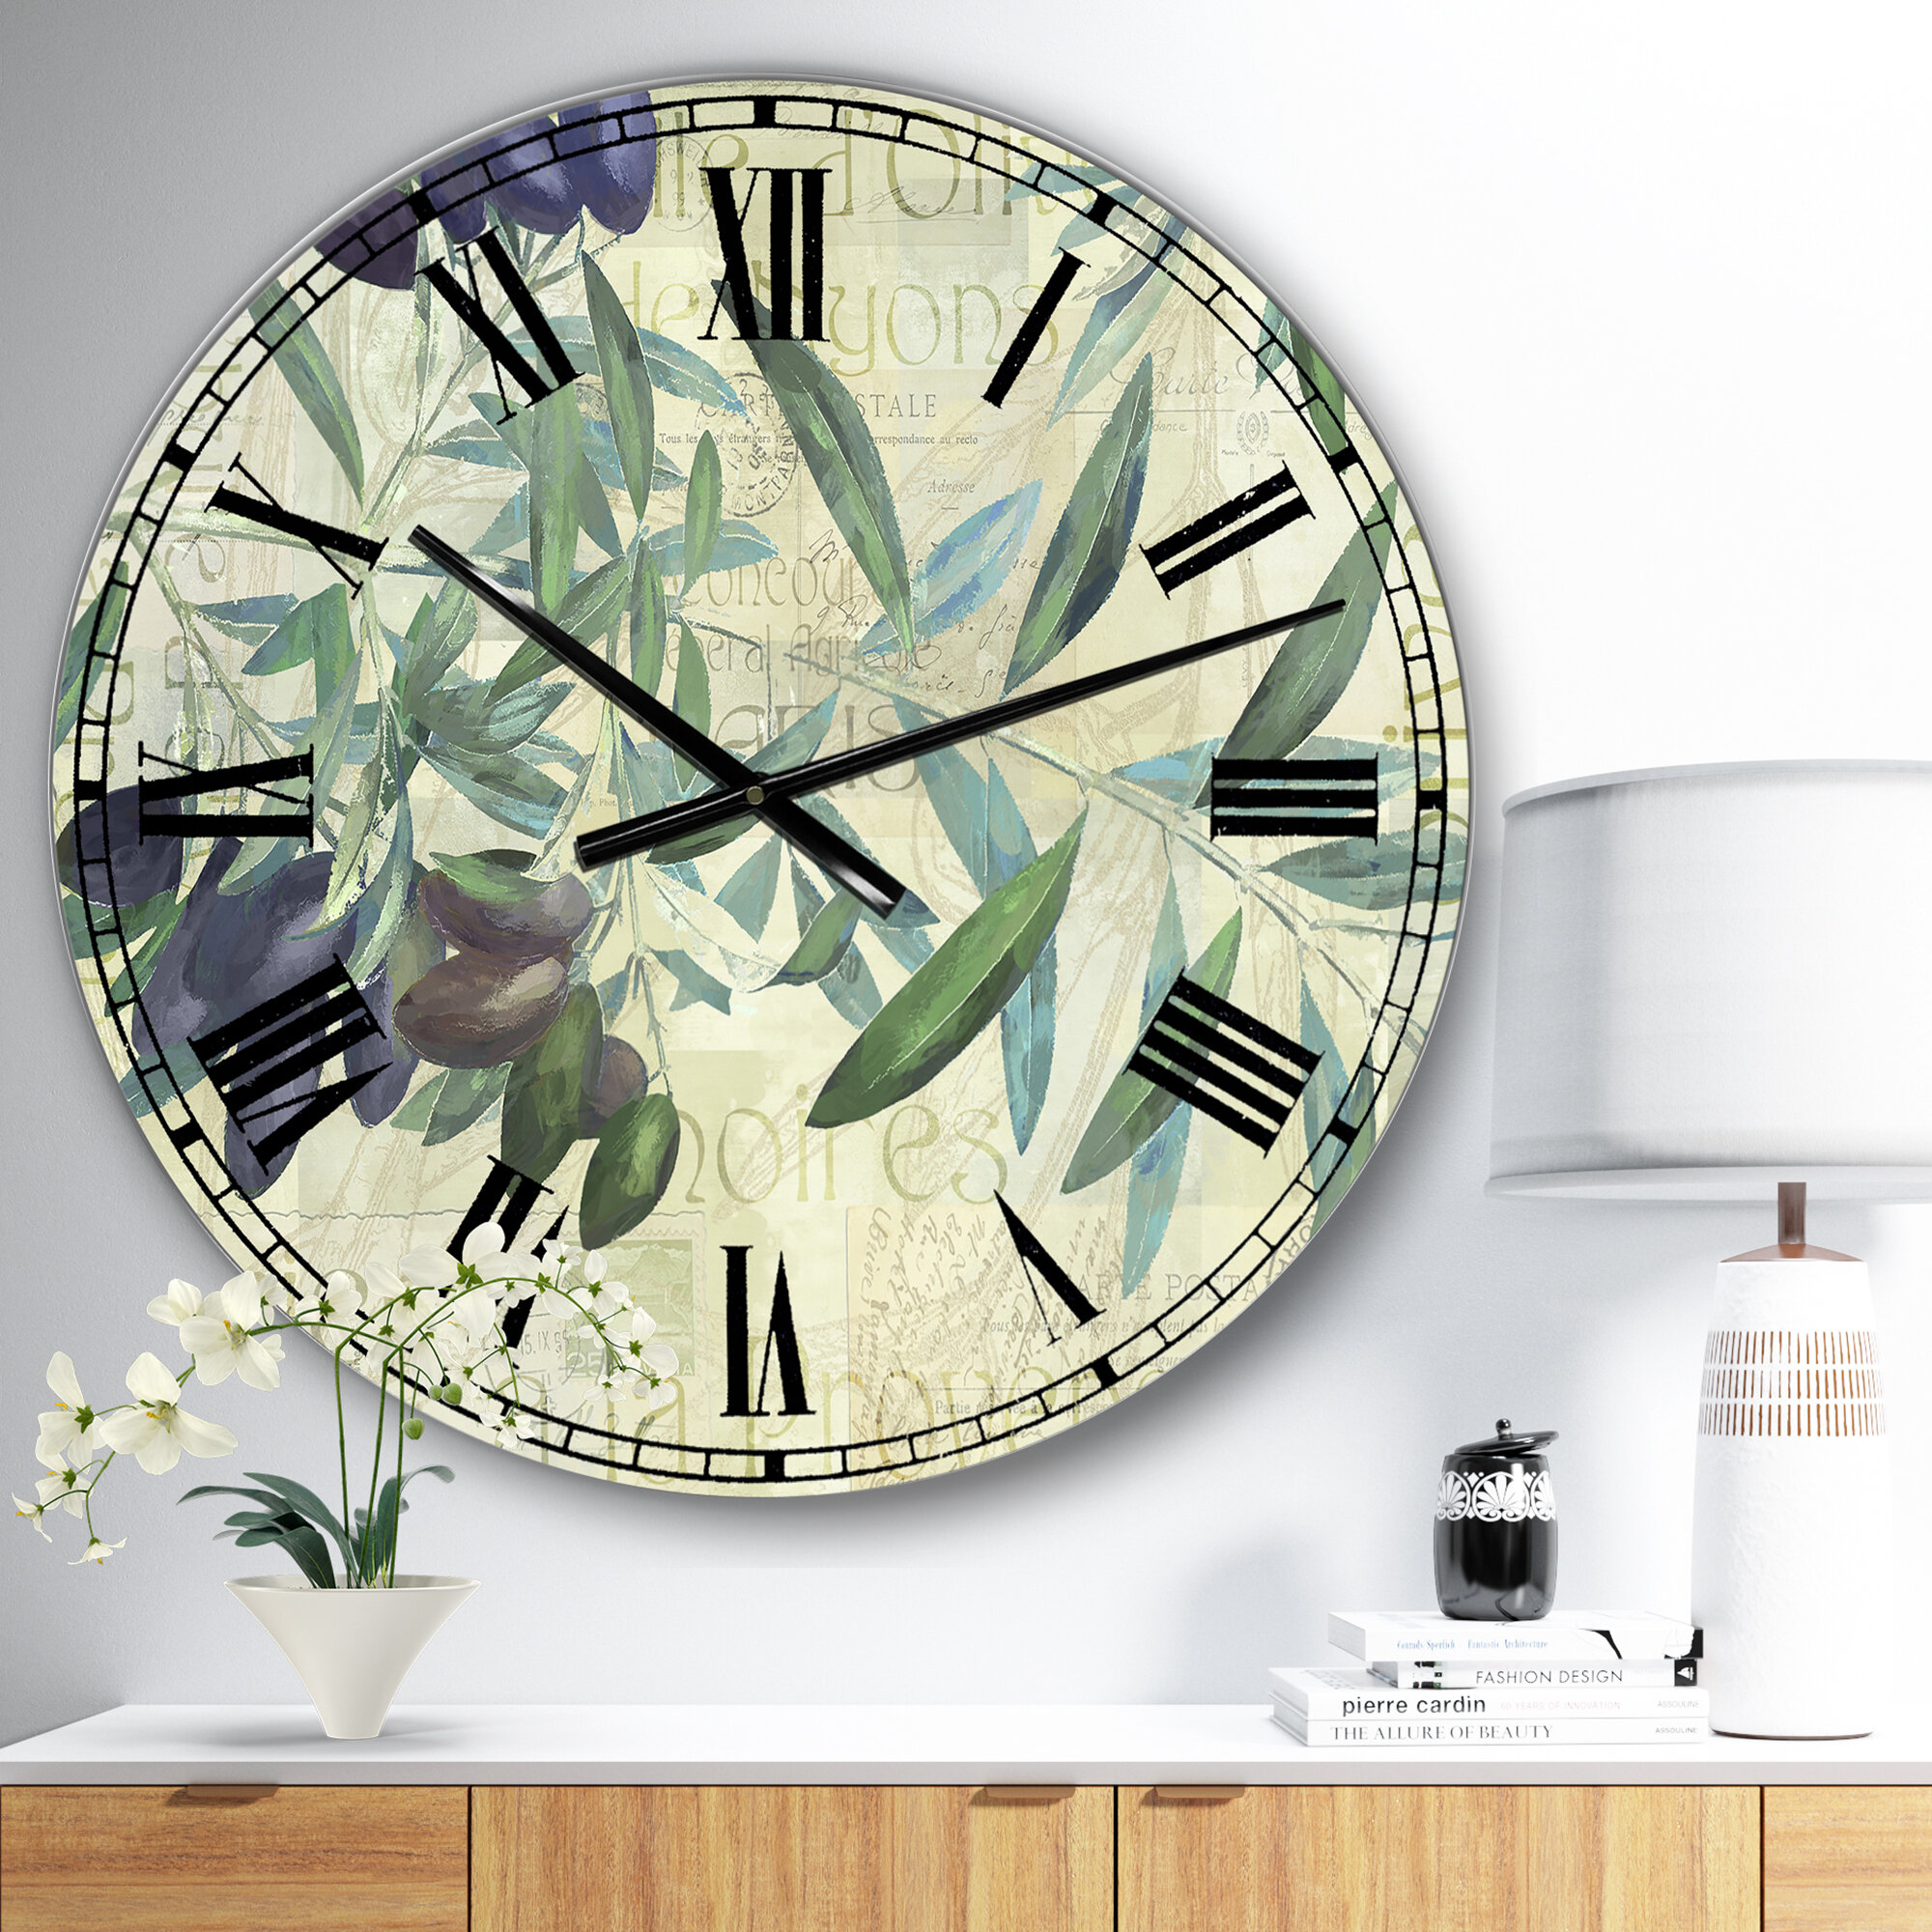 East Urban Home Oversized Olives De Nyons Wall Clock Wayfair